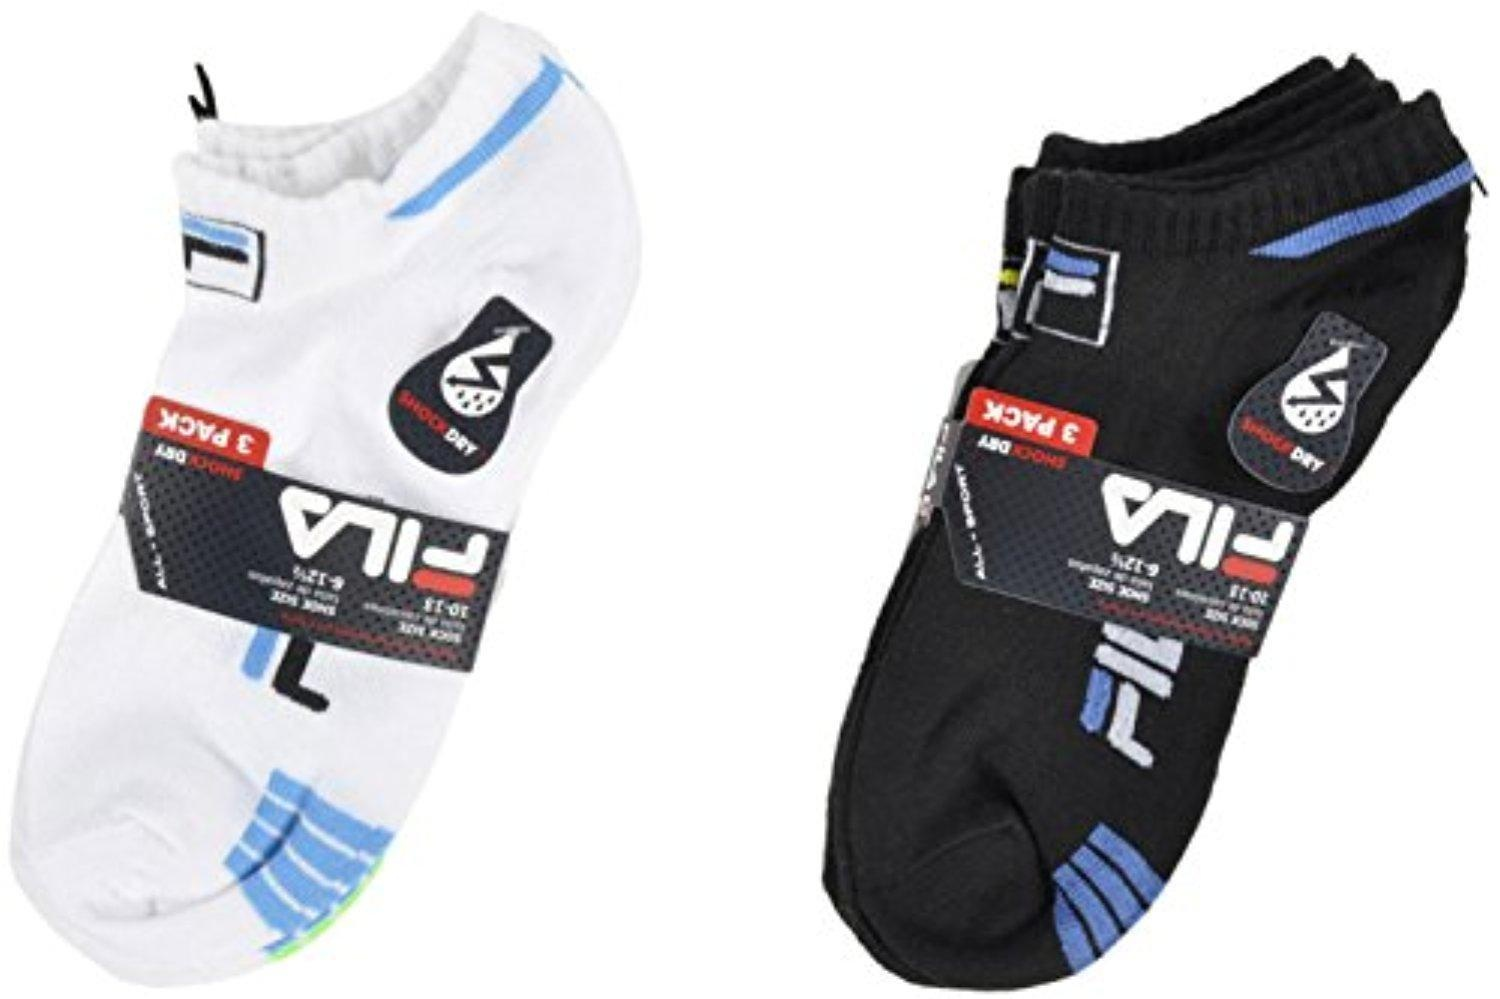 fila ankle socks. fila all-sport large ankle socks shock dry 3-pack in white low-cost